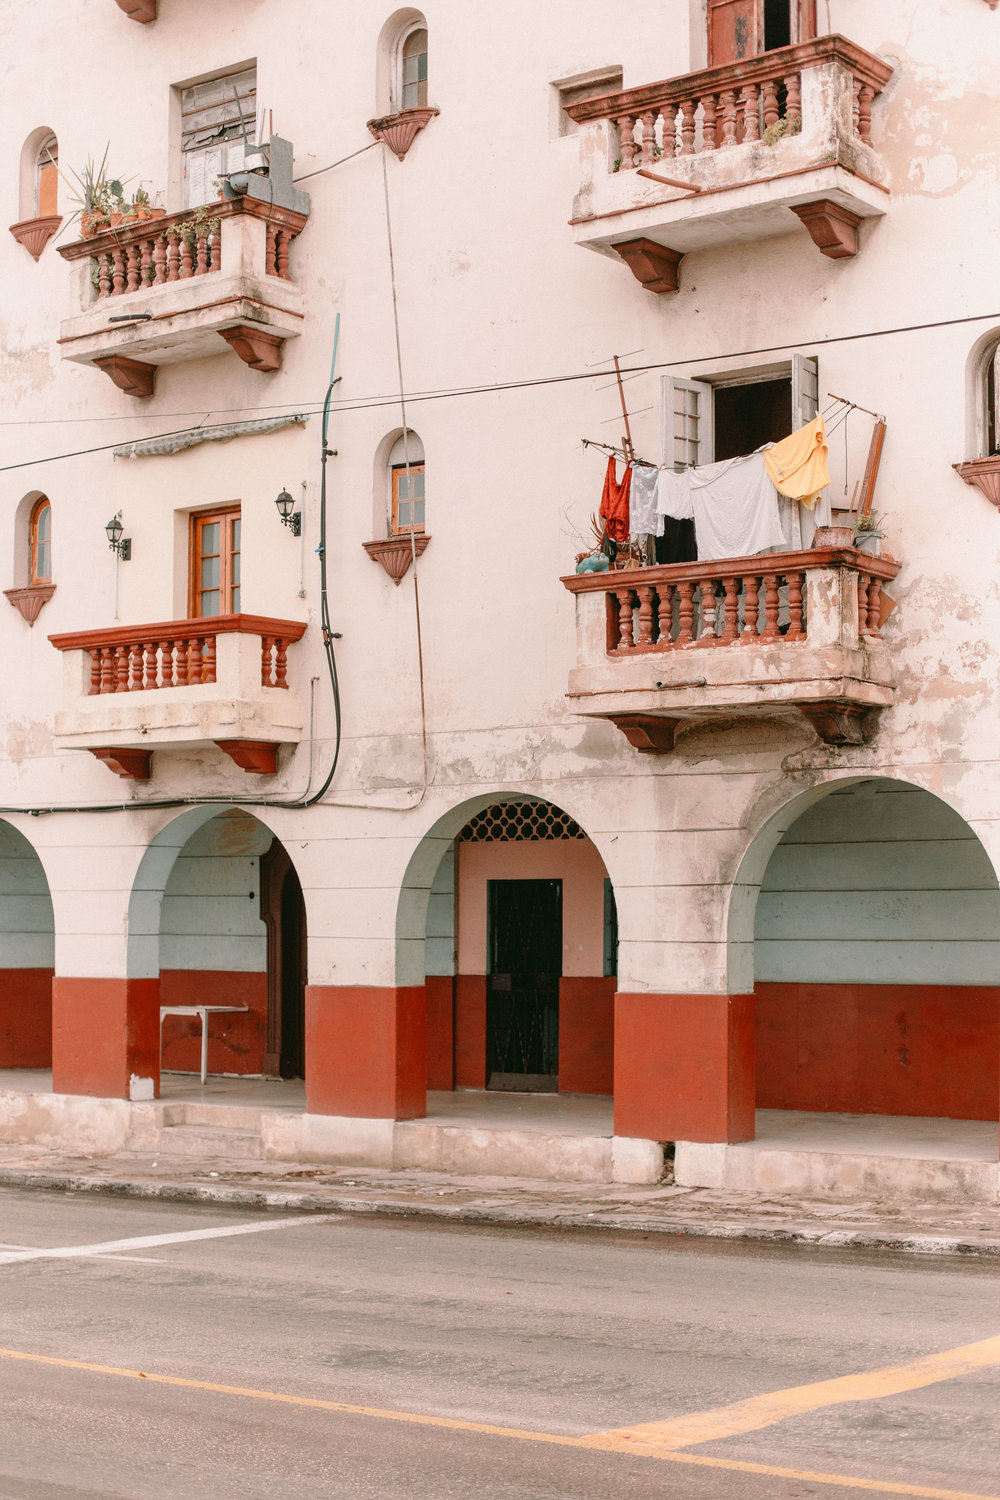 cuba_selects_all_lowres-7275.jpg